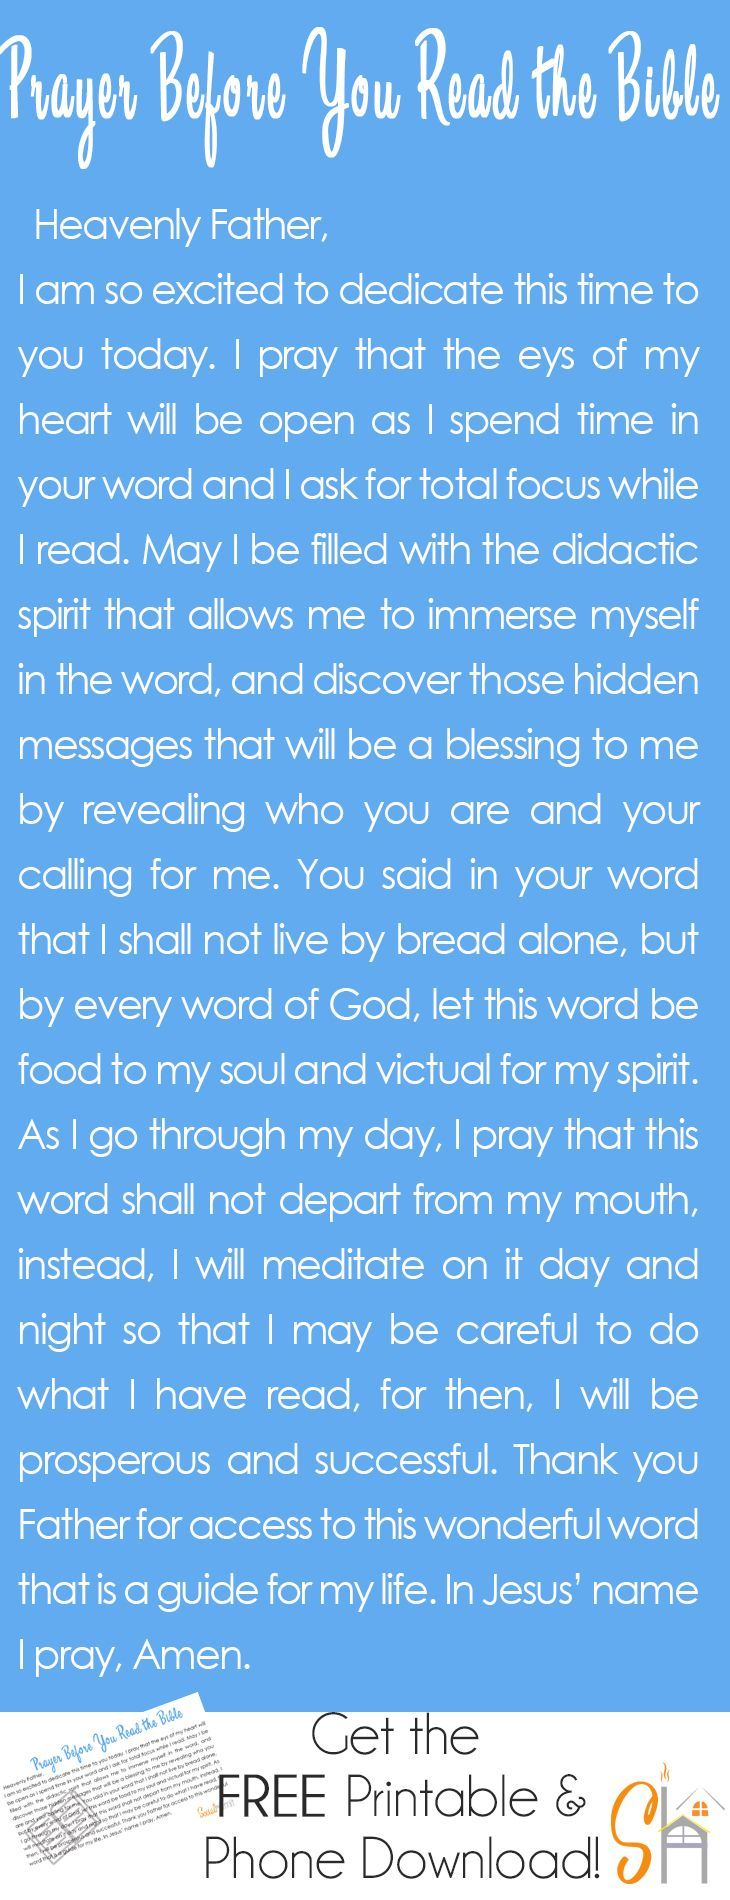 A prayer before you read the bible   socialhermit.me. It's important to invite the Holy Spirit into your quiet time with the Lord and have HIm direct your study time.